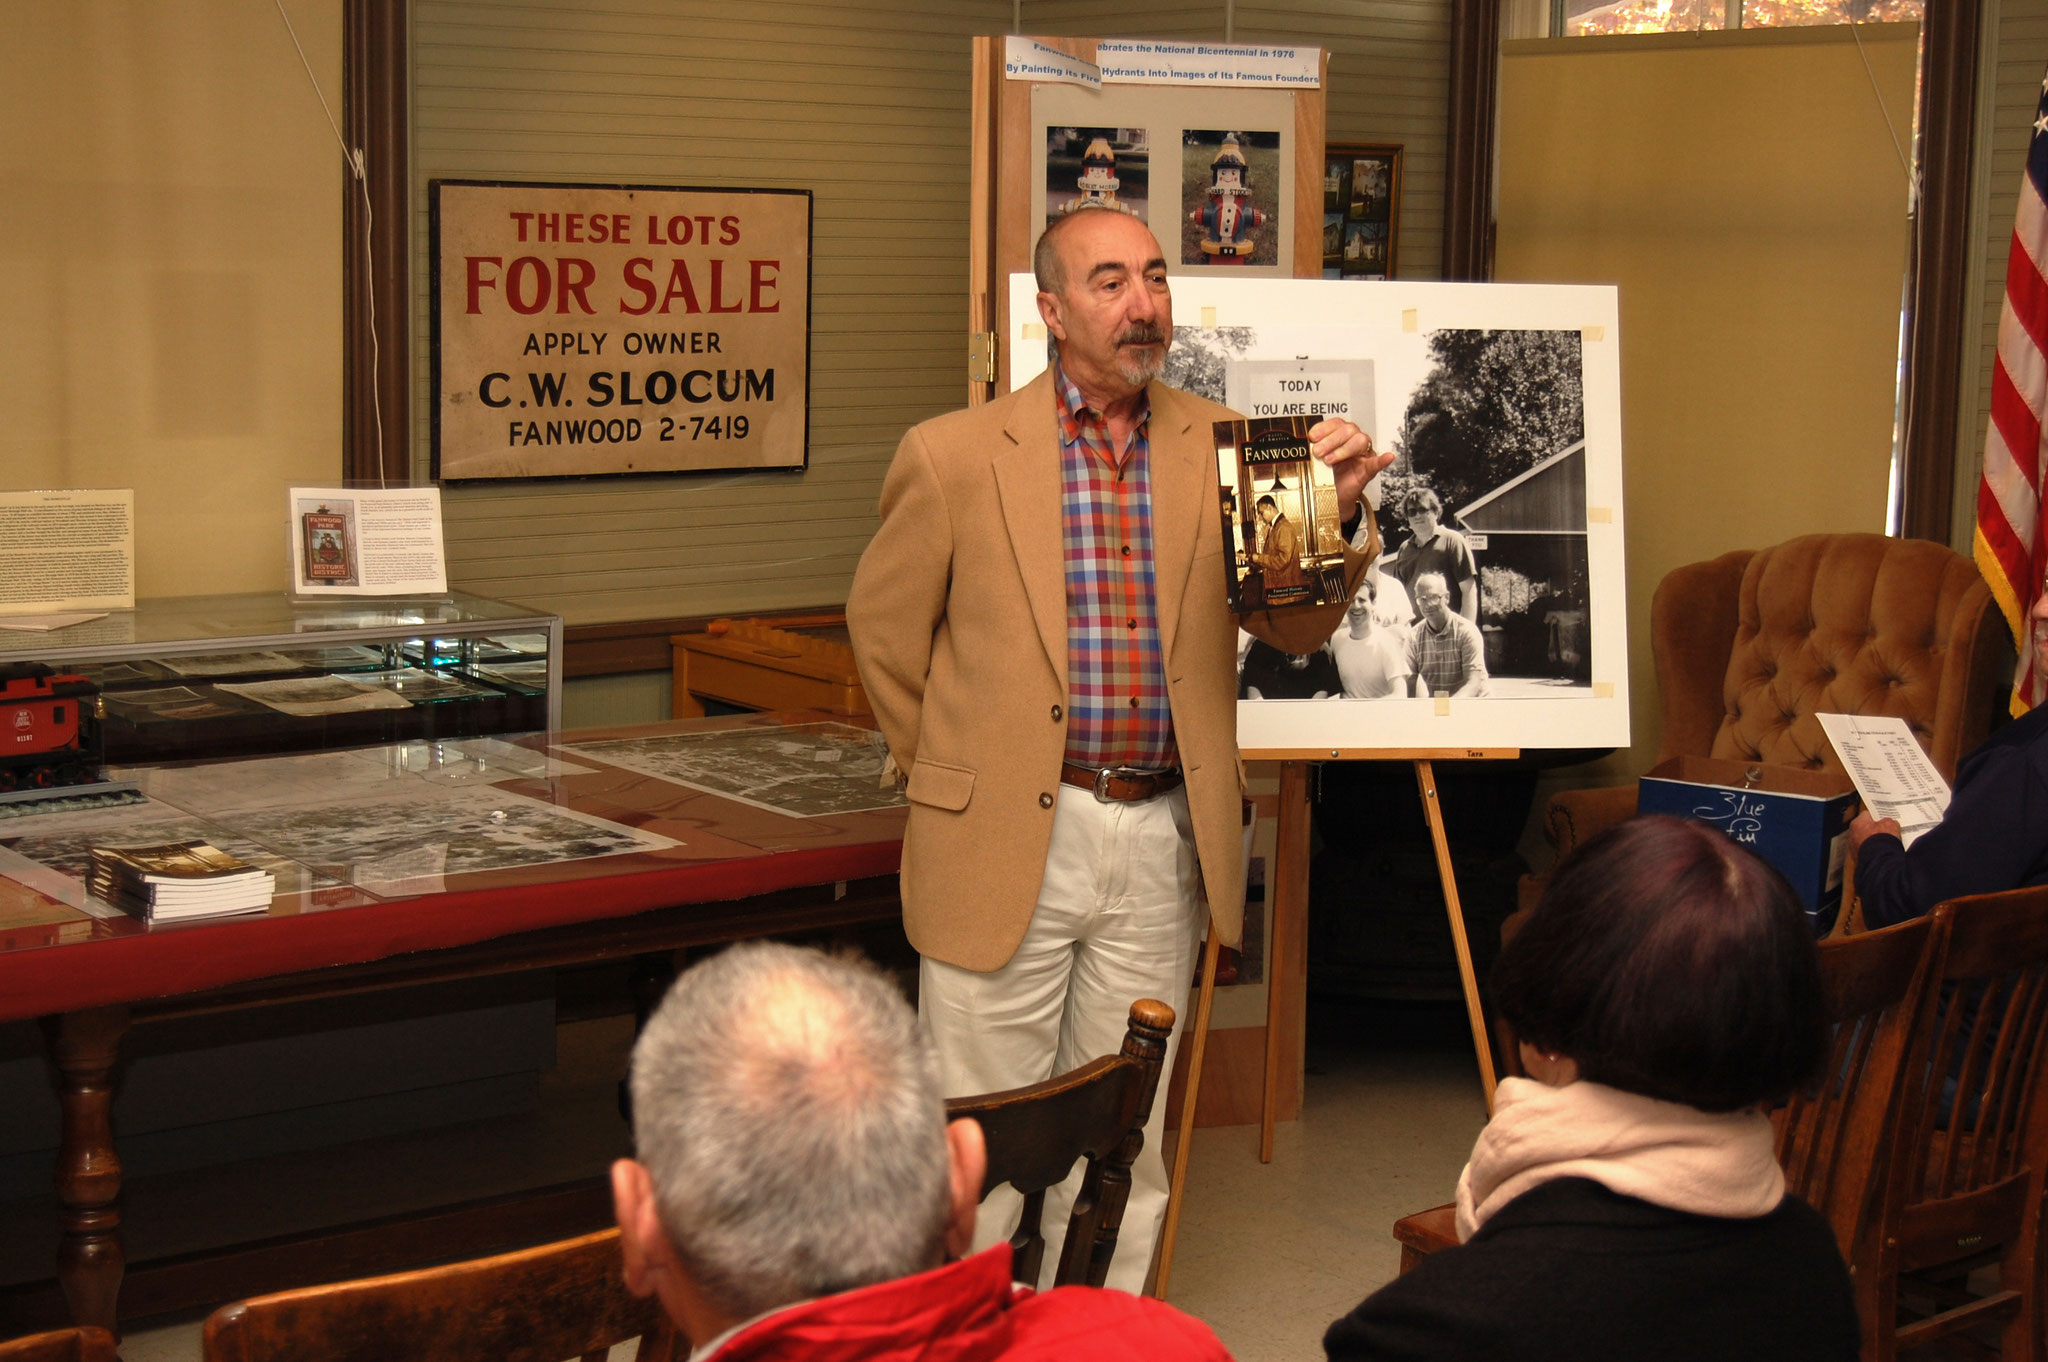 John speaking at the Fanwood Museum